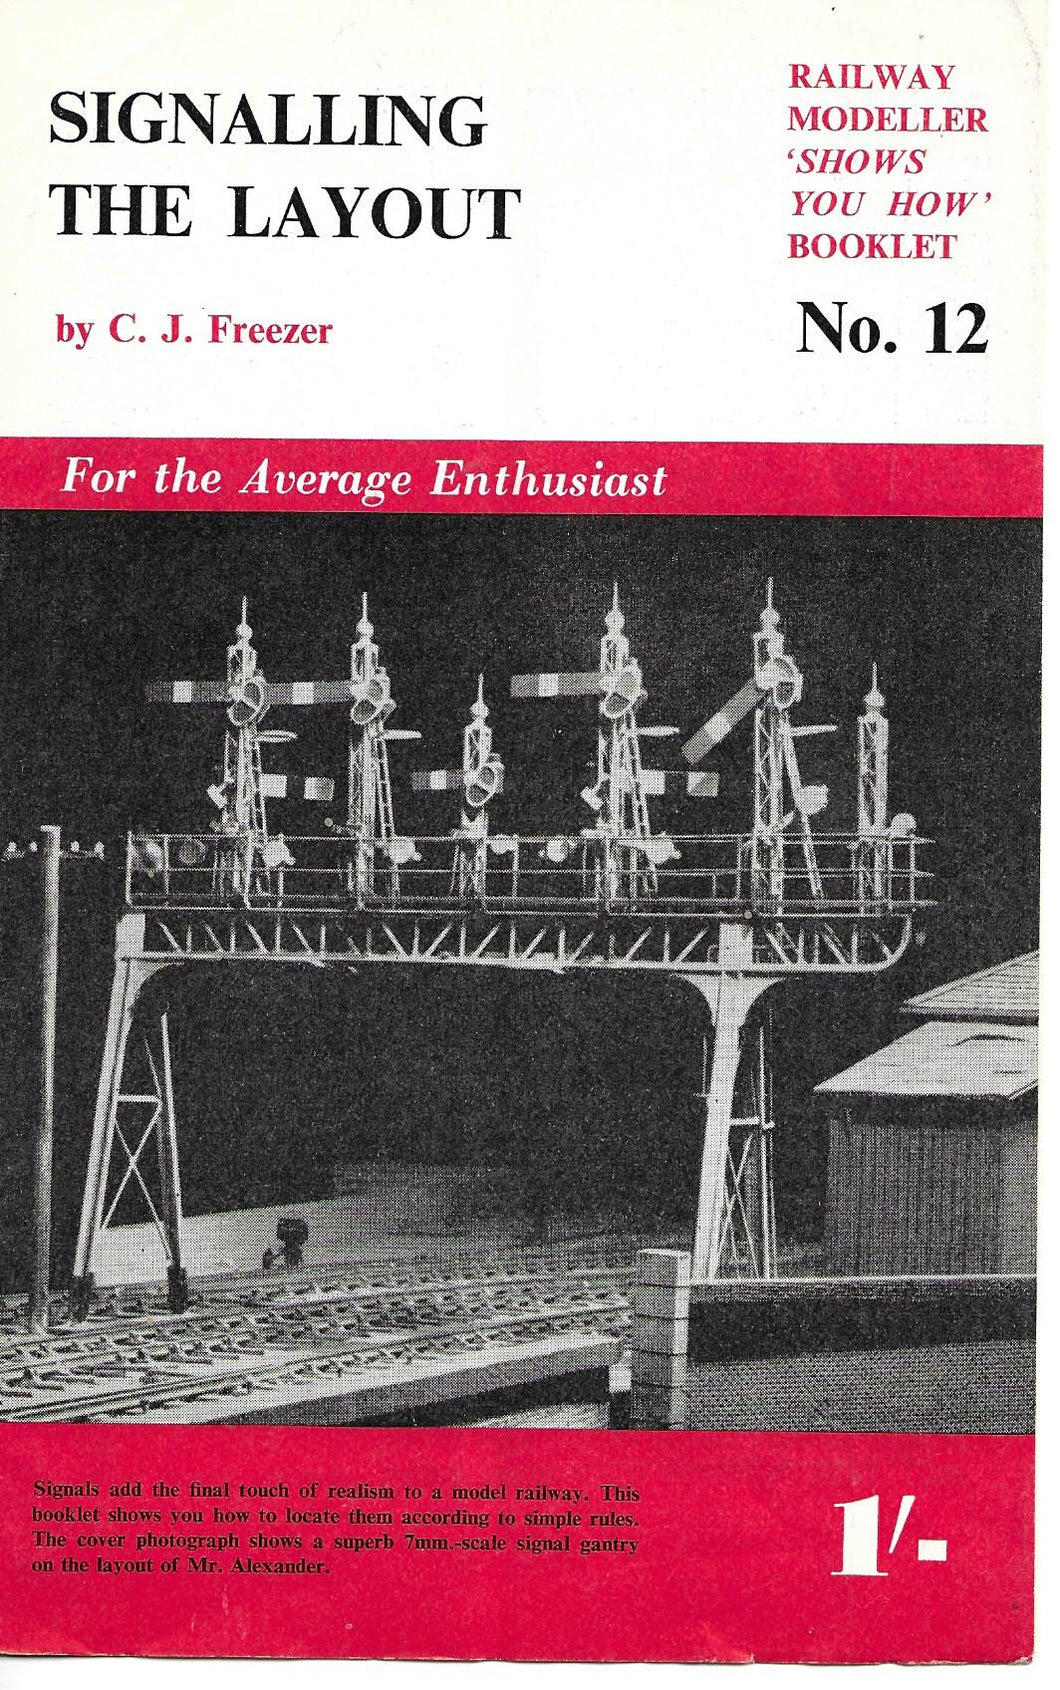 Railway Modeller, Shows You How, Booklet, Signalling The Layout, C.J. Freezer